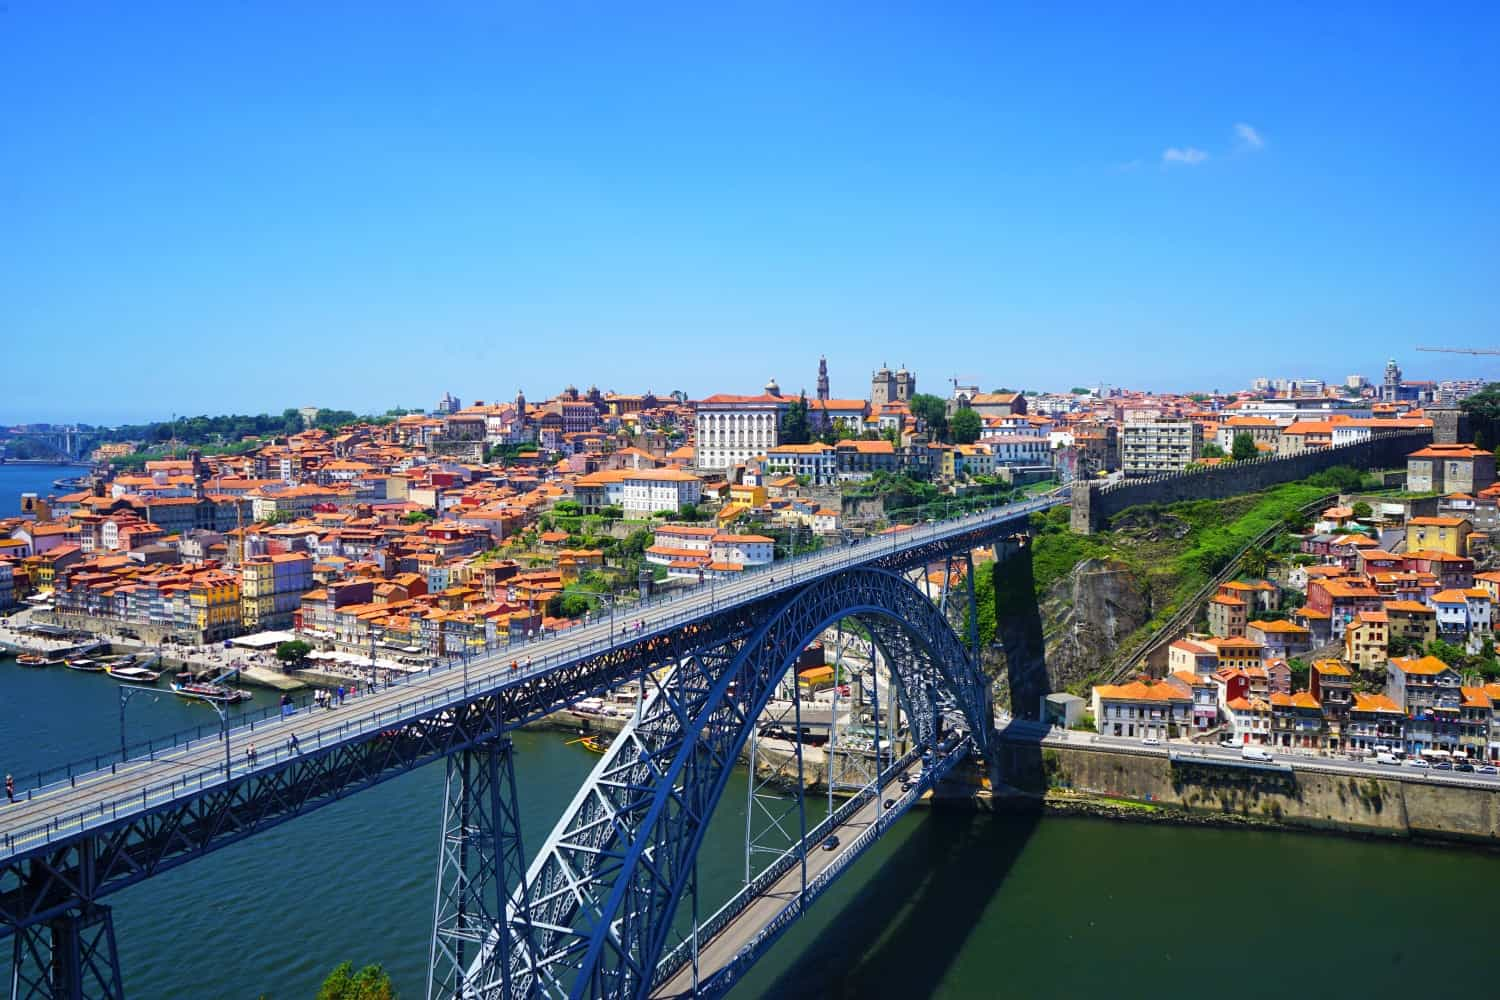 Porto bridge view